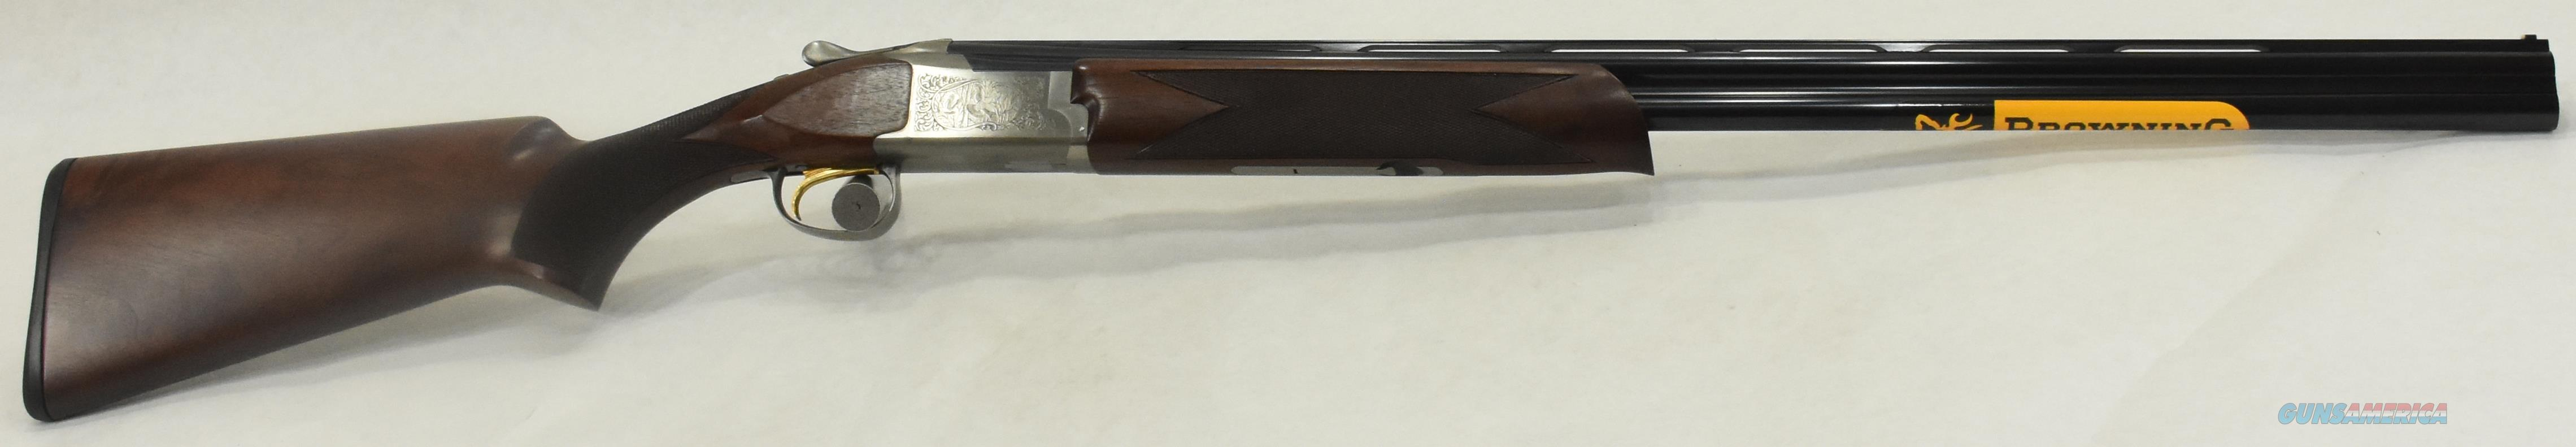 Citori 725 Field Walnut 28Ga 28-2.75In 013530813  Guns > Shotguns > Browning Shotguns > Over Unders > Citori > Hunting